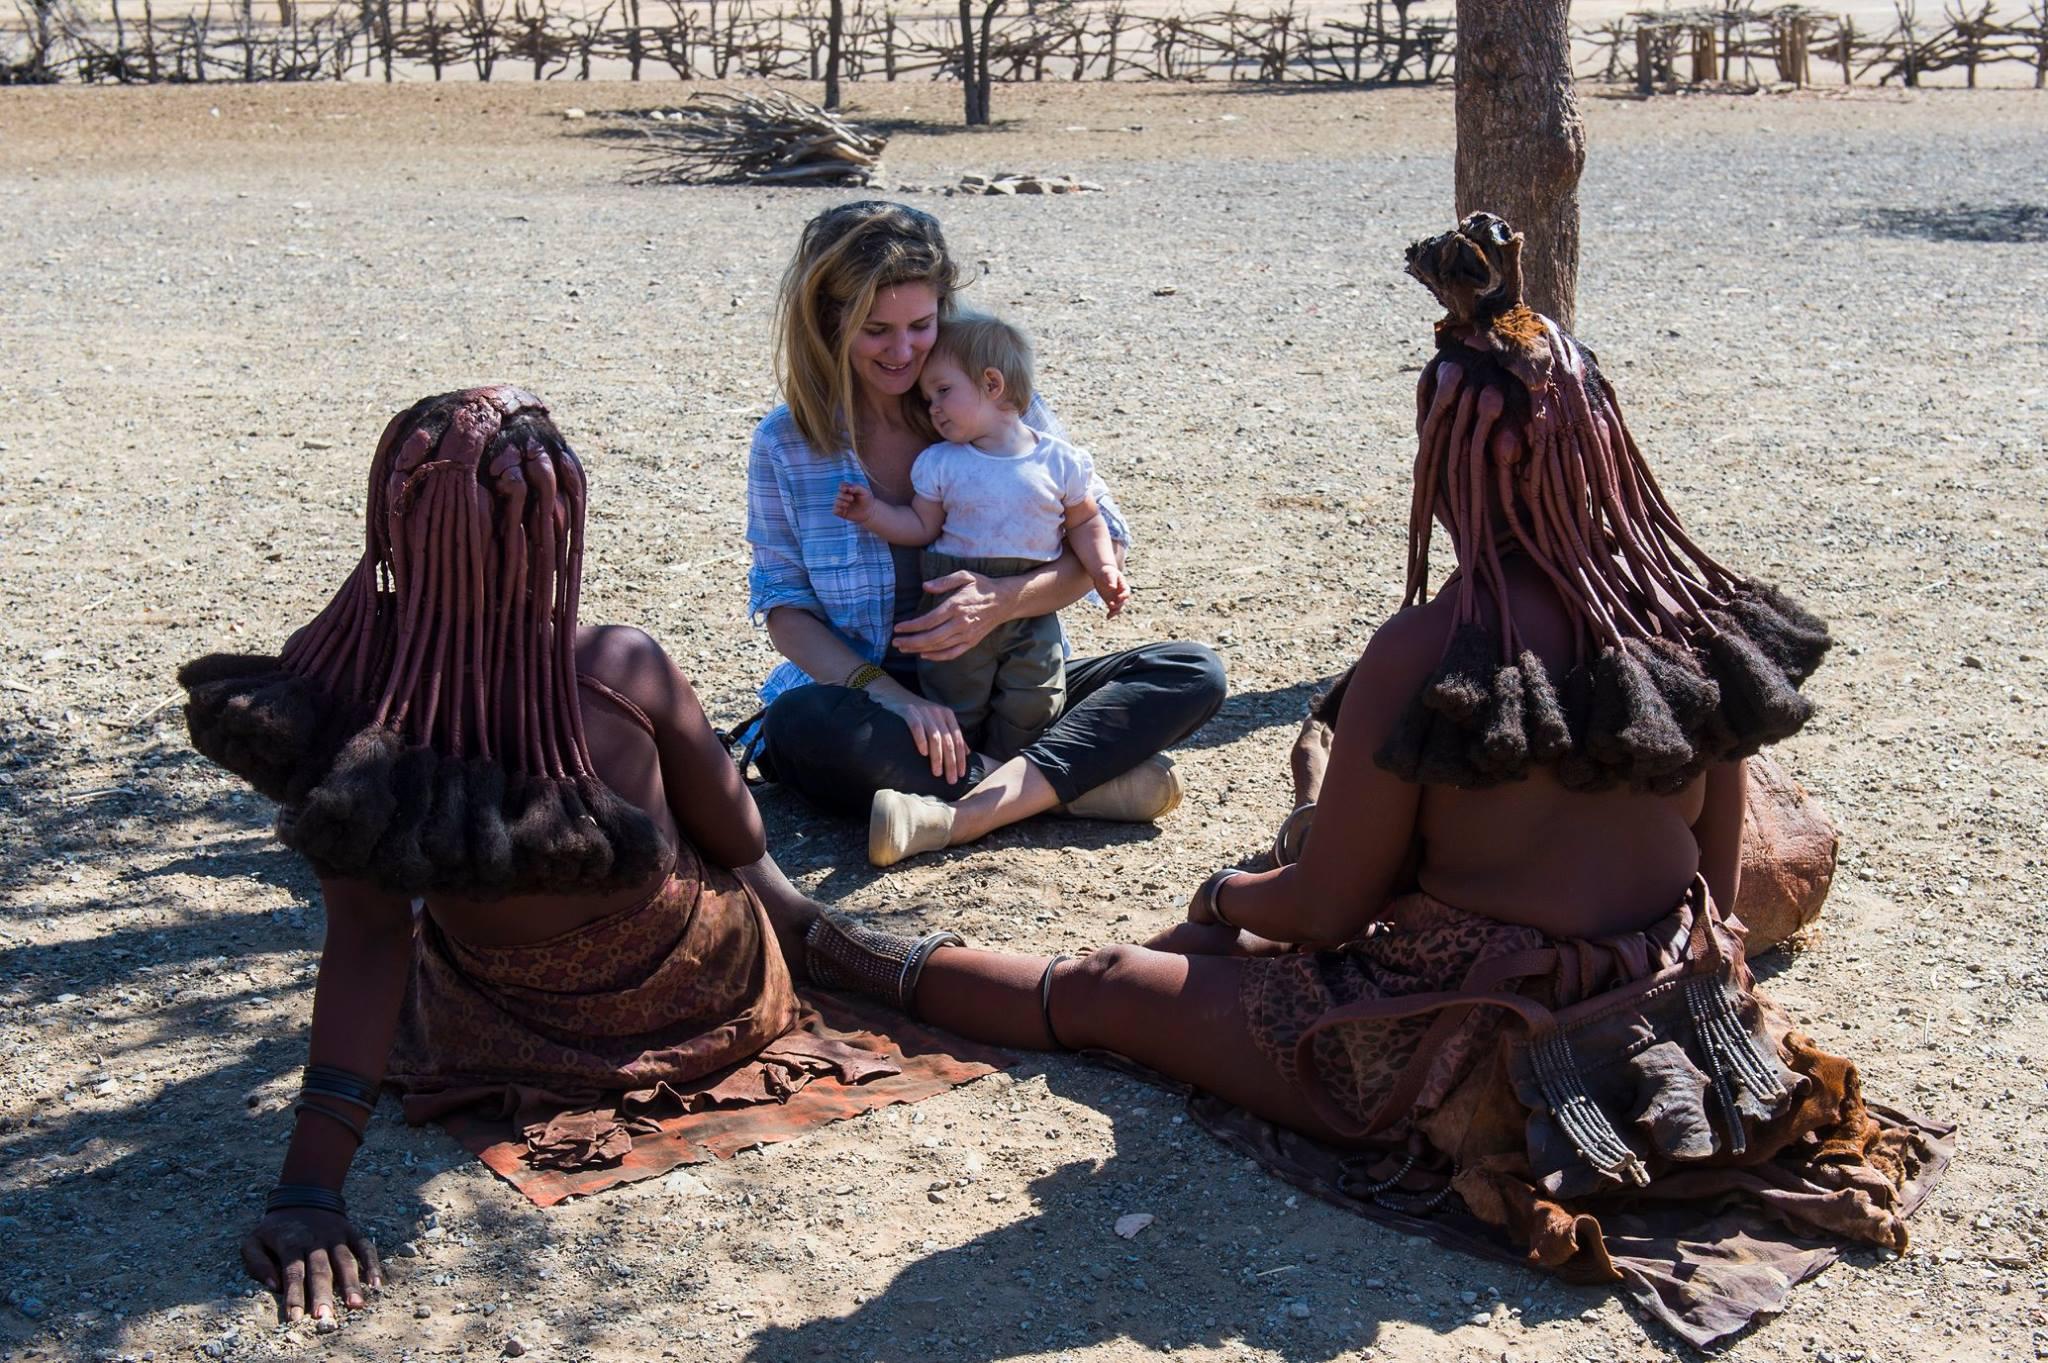 With women of the Himba tribe in northern Namibia.